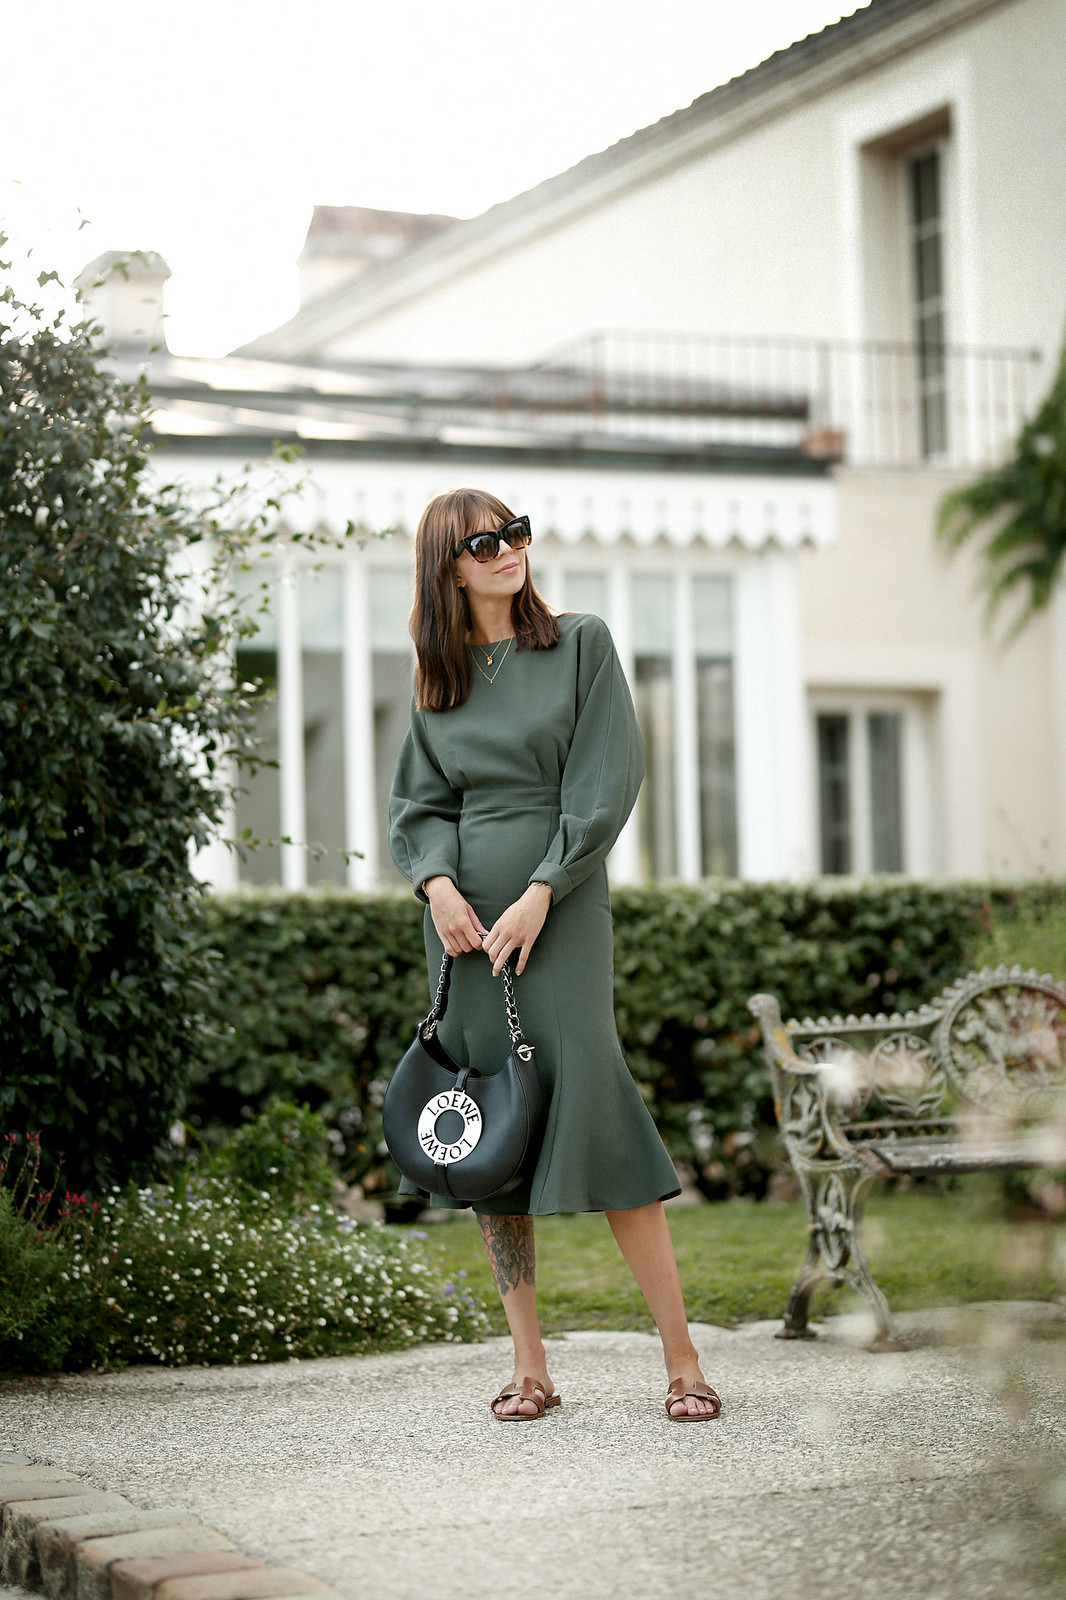 outfit green dress loewe joyce bag breuninger celine sunglasses les sources de caudalie france bordeaux late summer look going out dinner style hermes oran sandals brown minimal french chic parisienne bangs brunette france cats & dogs fashion blogger 7